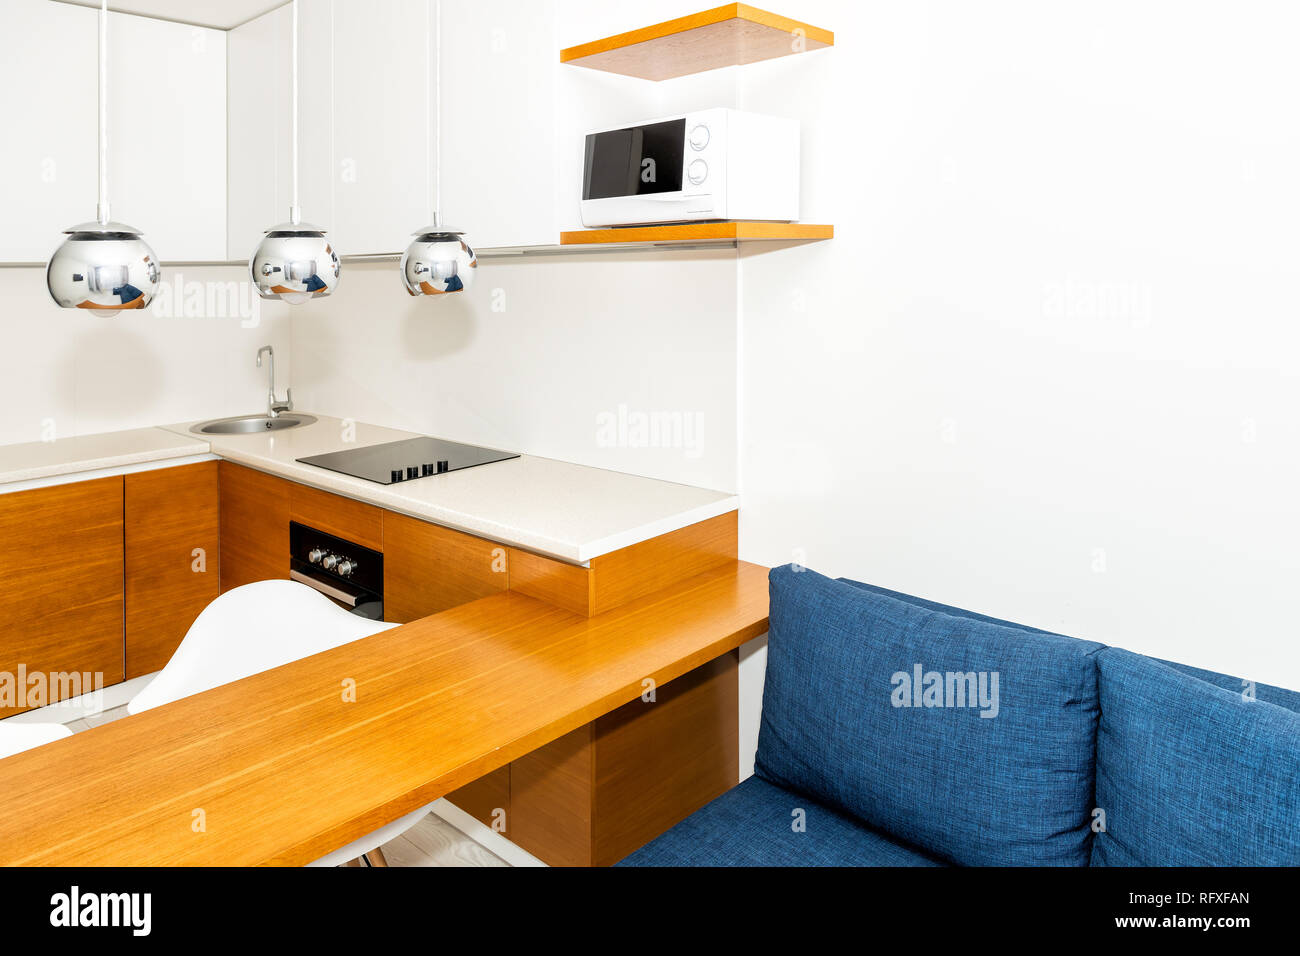 Attrayant Modern Wooden Orange Kitchen Features Cabinets In Small Apartment Studio  Bar Stool Counter Interior Design And Nobody On Blue Sofa In Minimalist Home